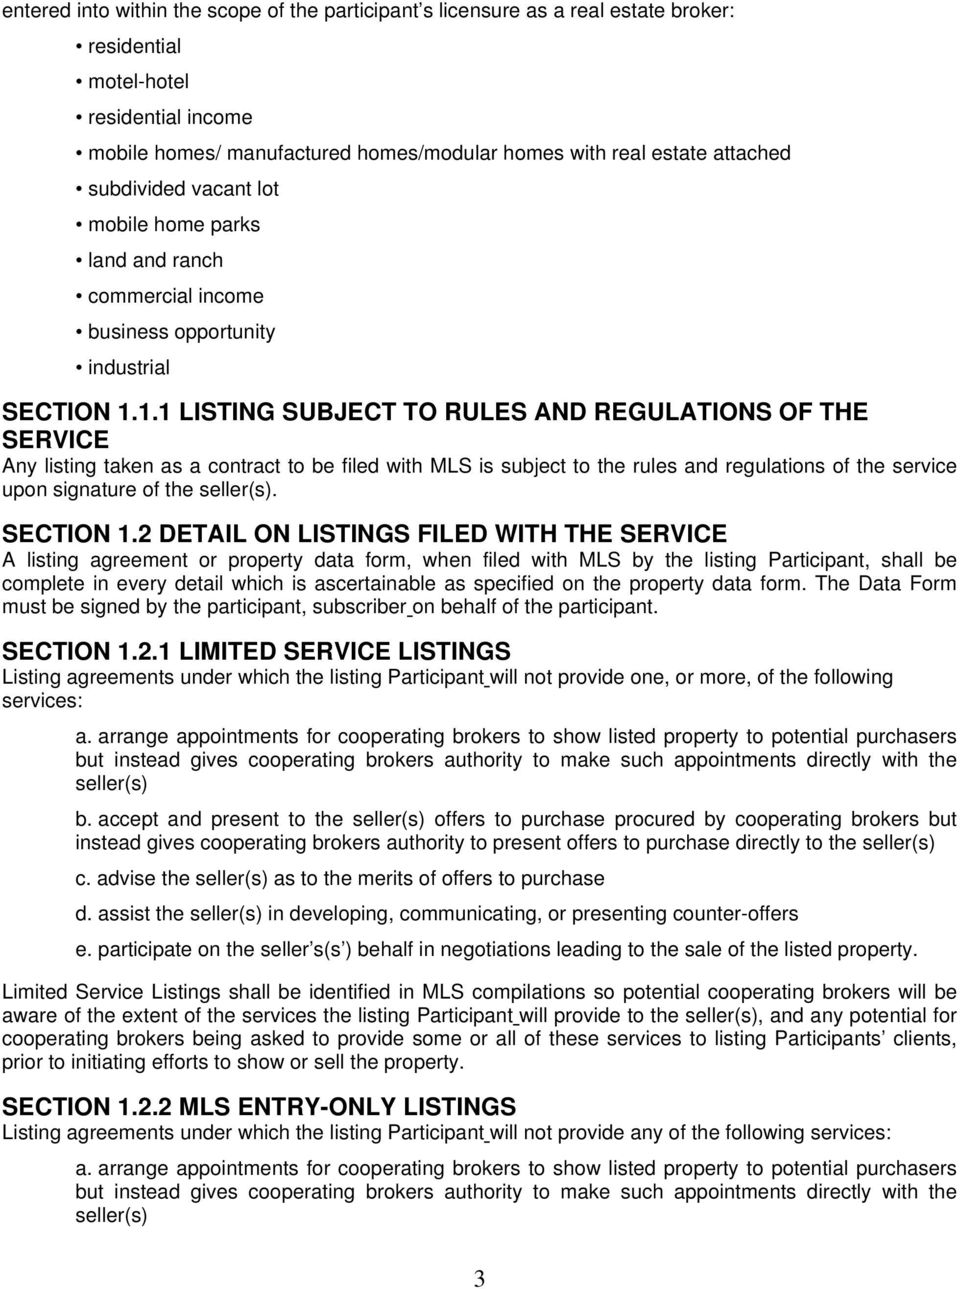 1.1 LISTING SUBJECT TO RULES AND REGULATIONS OF THE SERVICE Any listing taken as a contract to be filed with MLS is subject to the rules and regulations of the service upon signature of the seller(s).